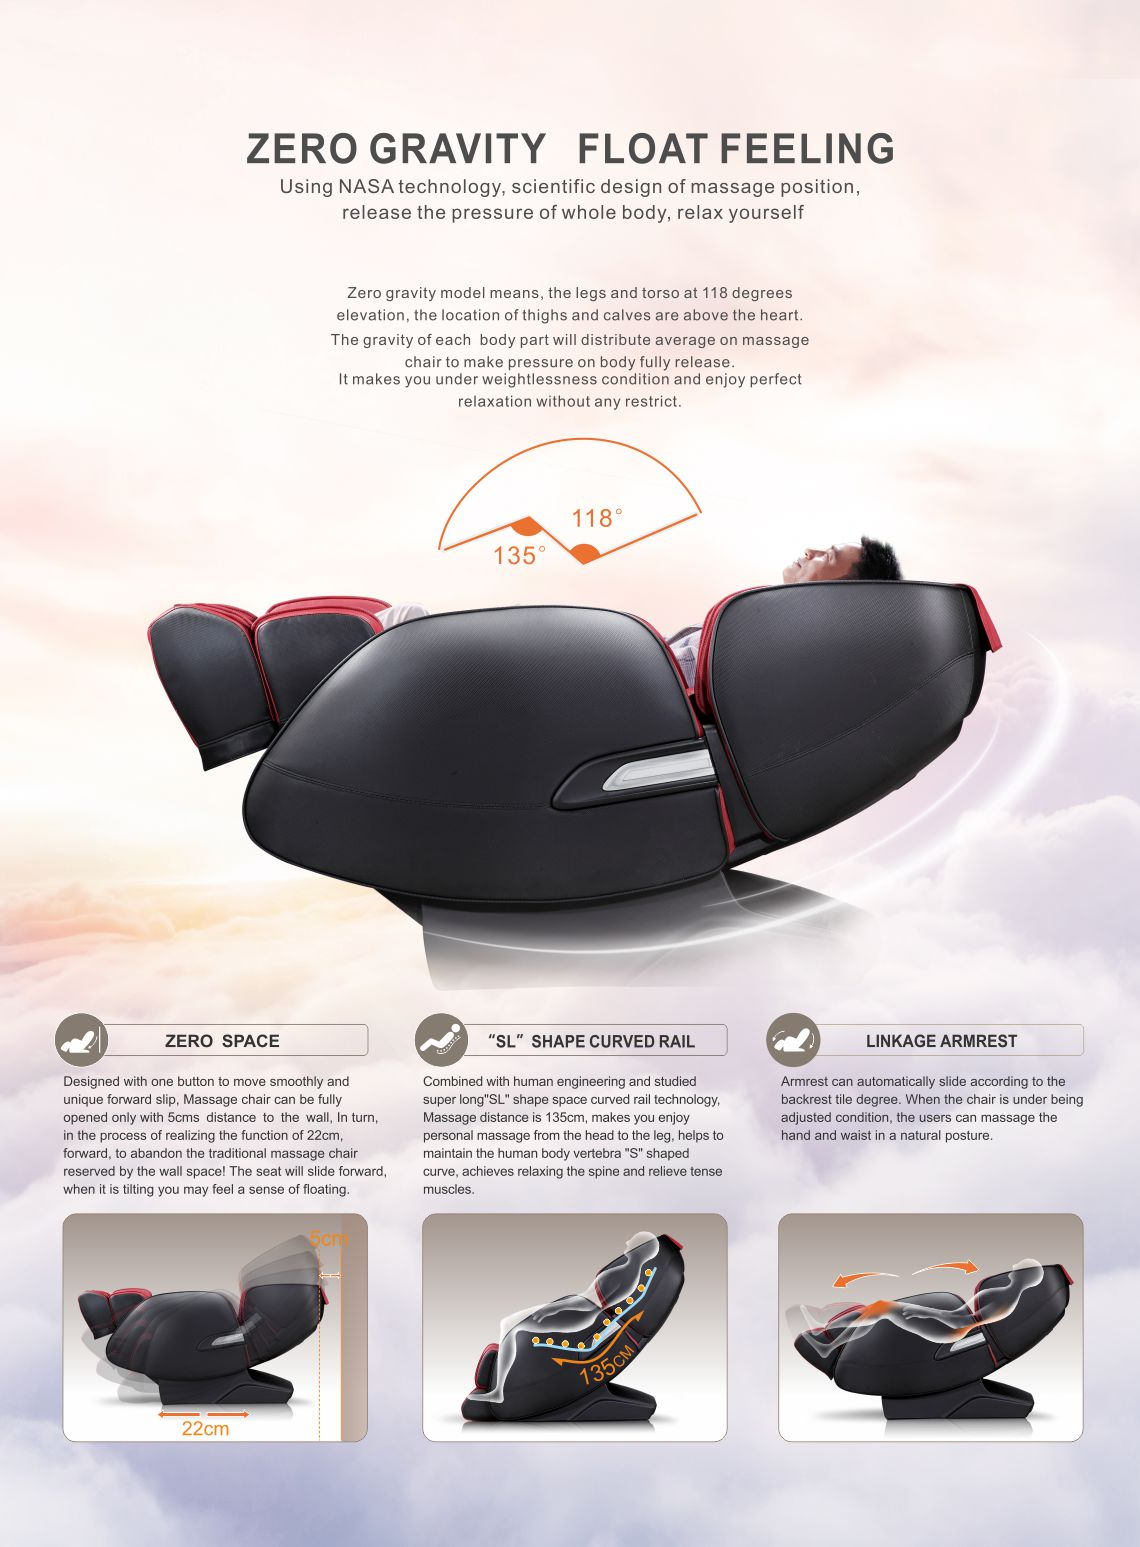 iRest Massage Chair SL-A389-2 Luxury Massage Chair Zero Gravity Float Feeling